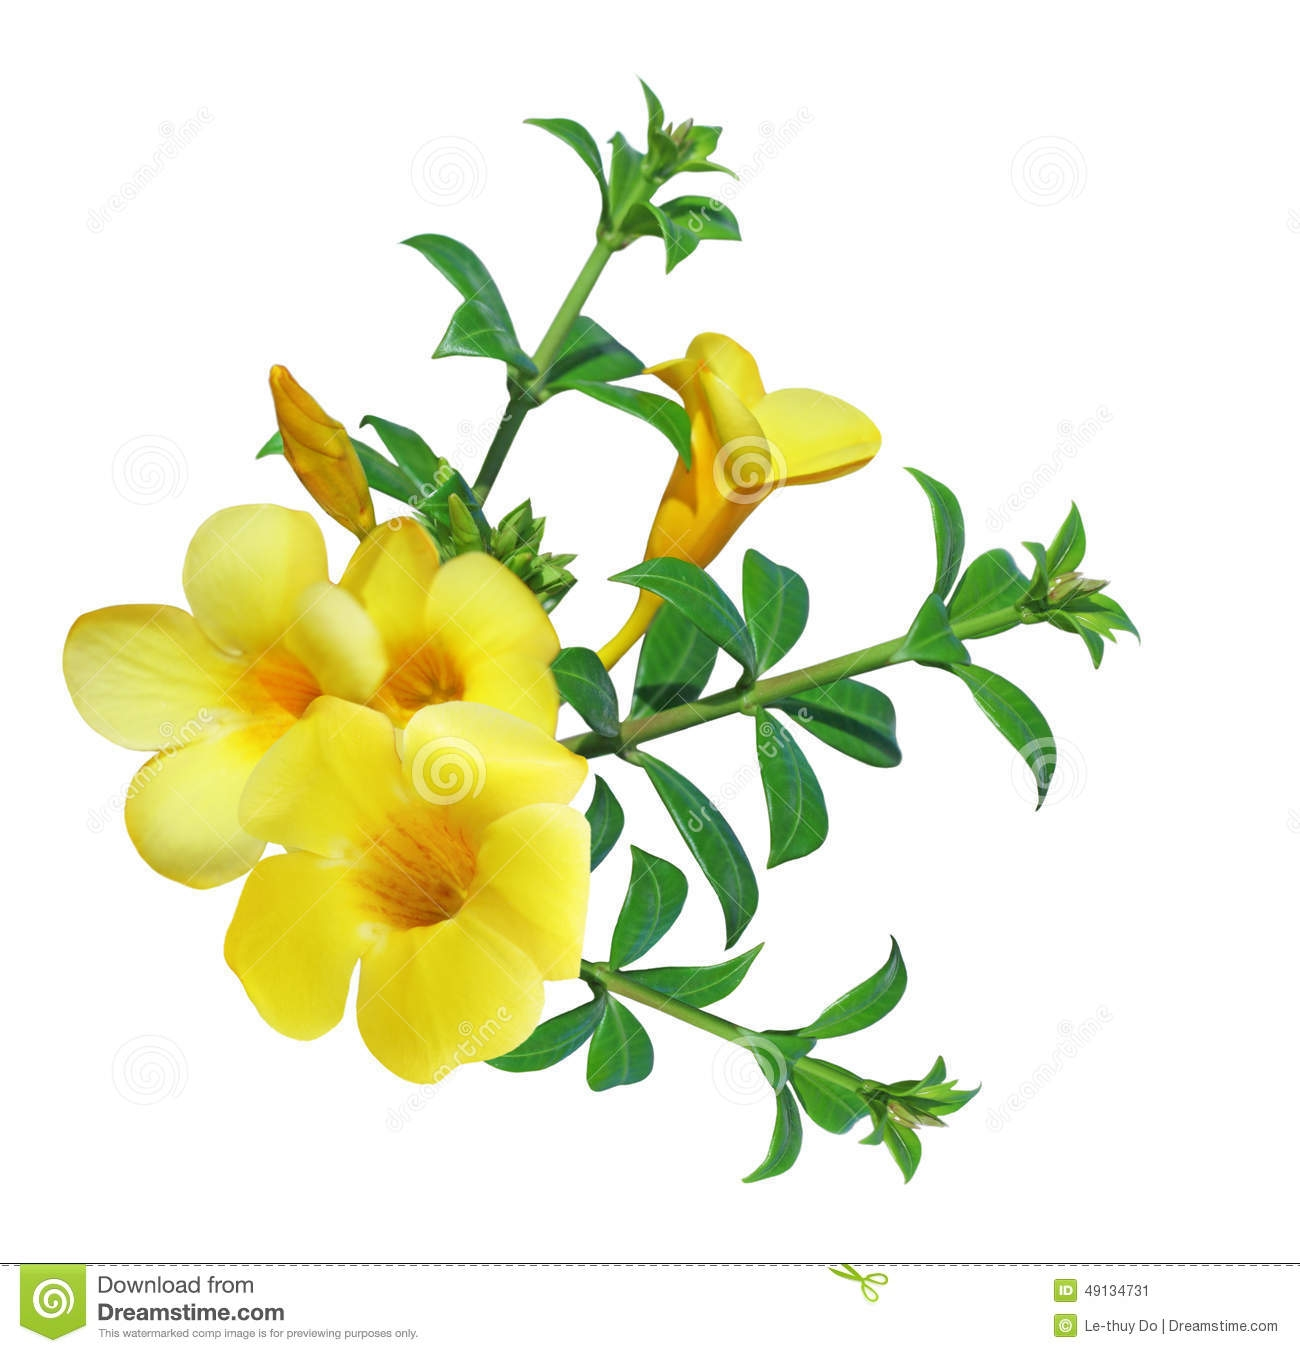 Yellow Flower clipart black and white Yellow Flower Clipart Black Gallery